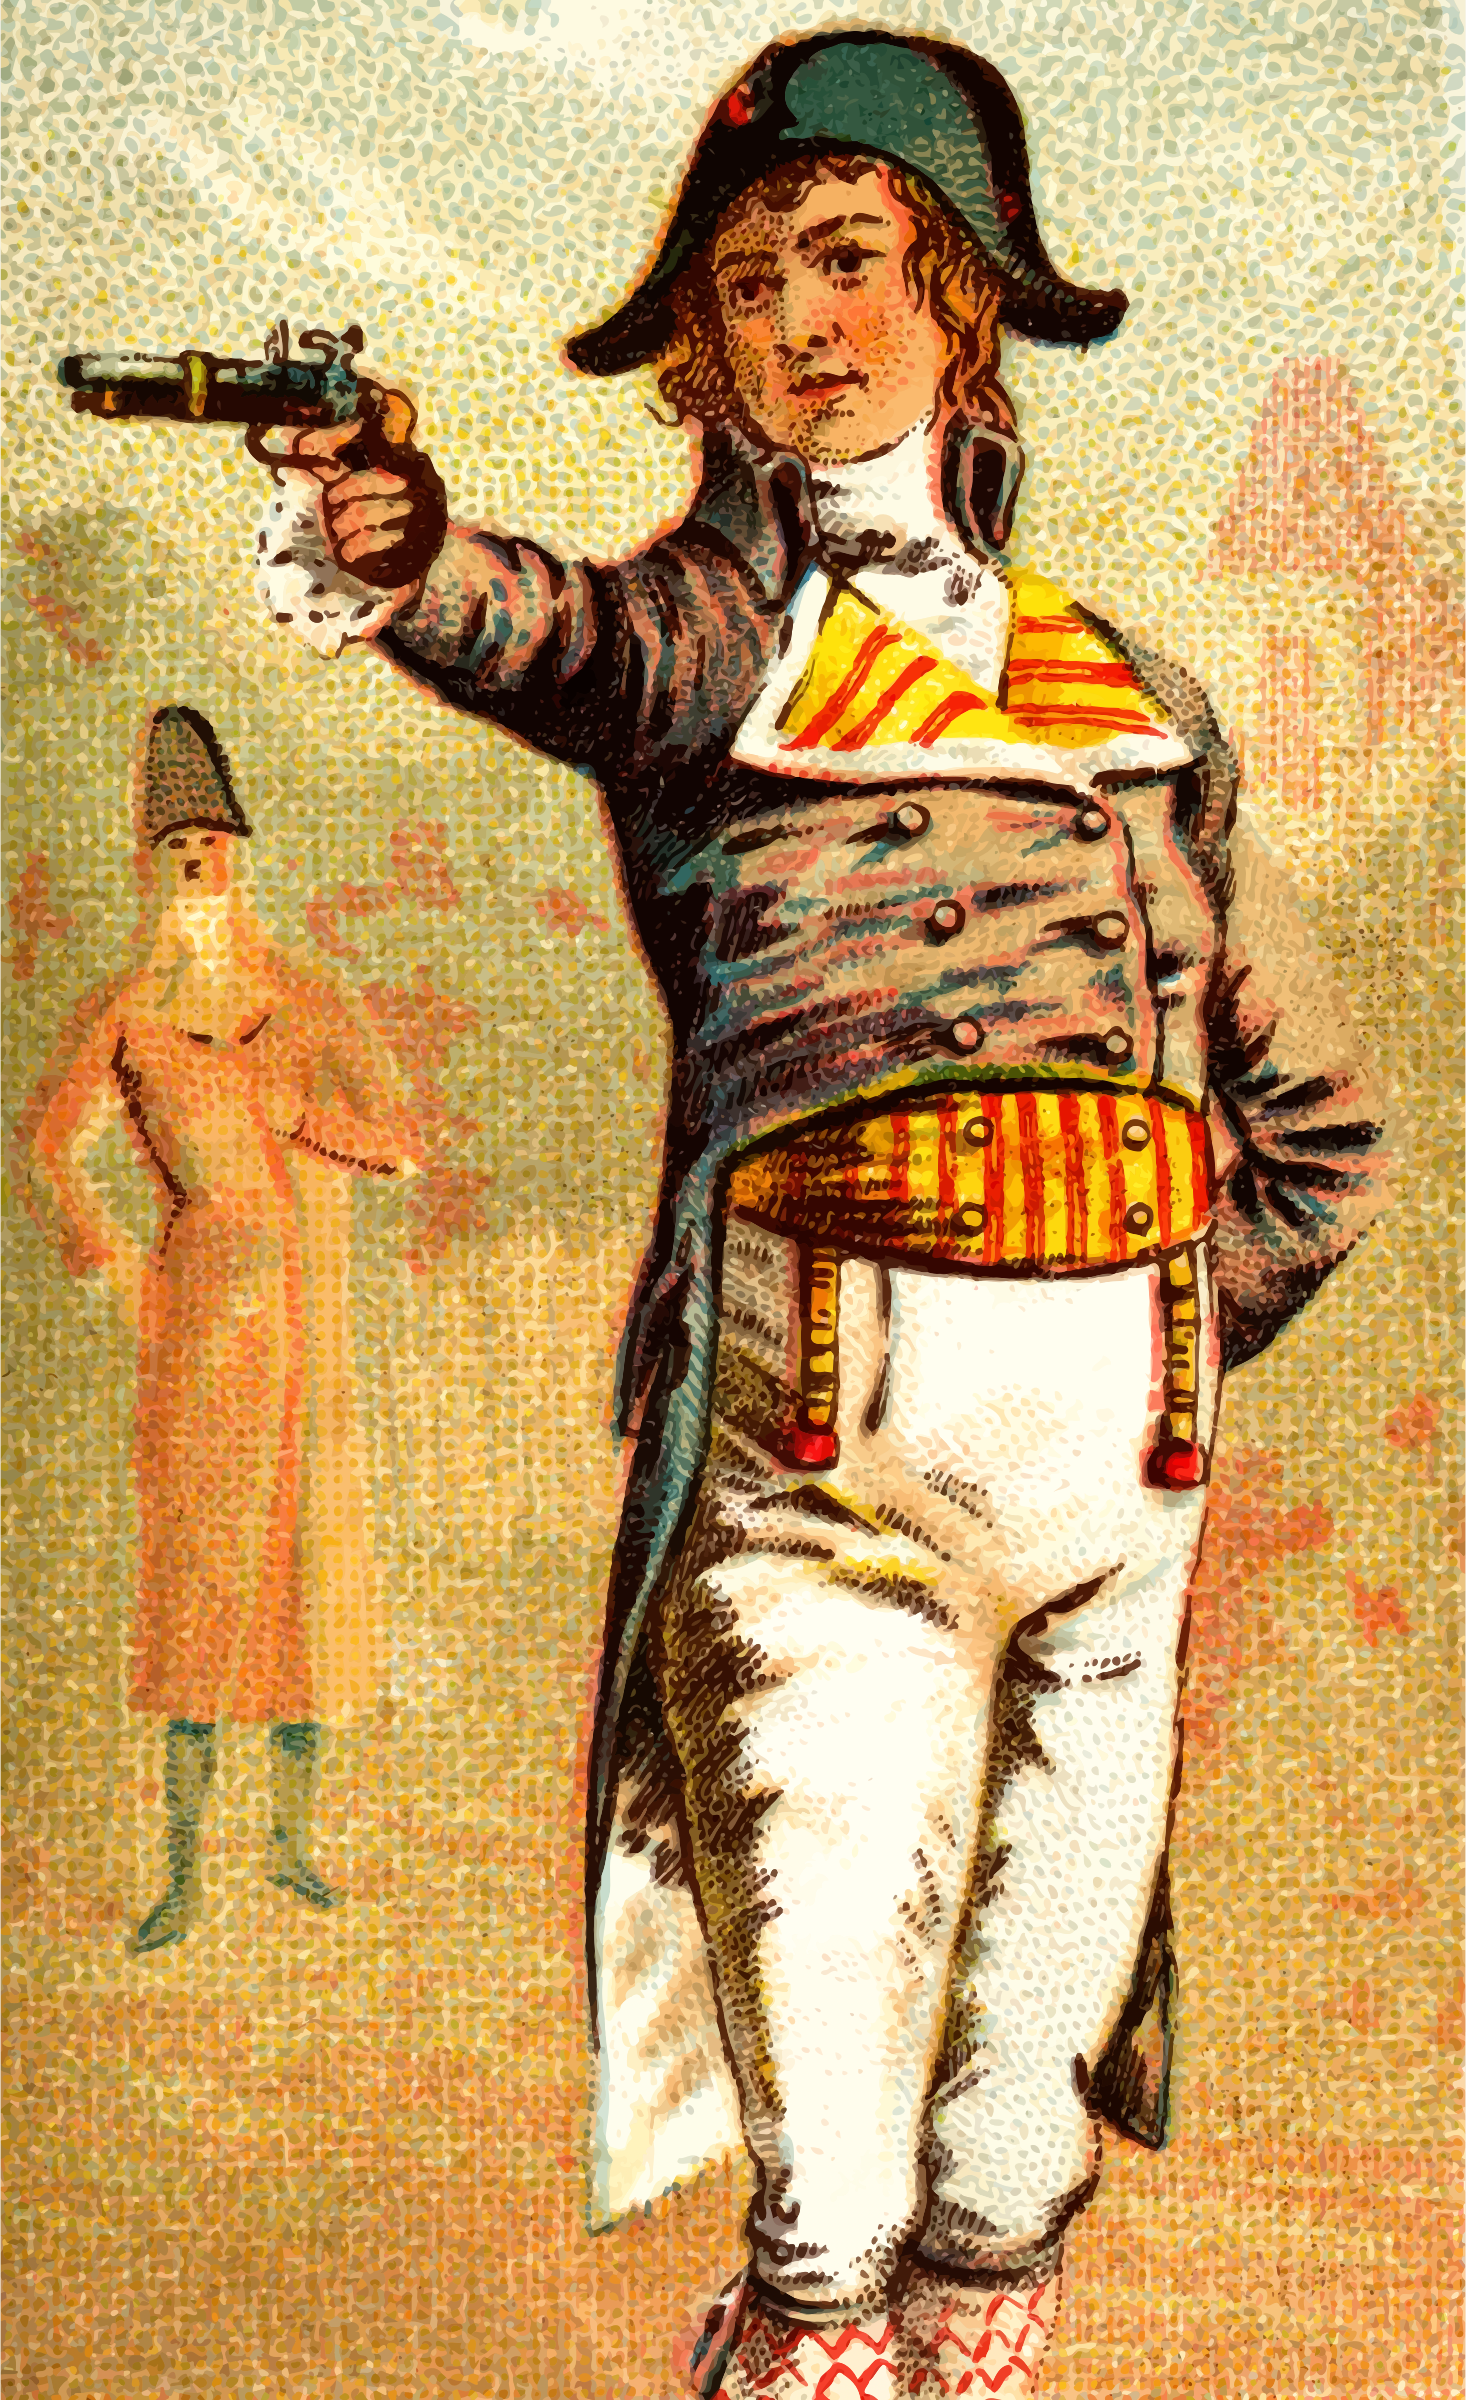 Cigarette card - Duelling Pistol by Firkin